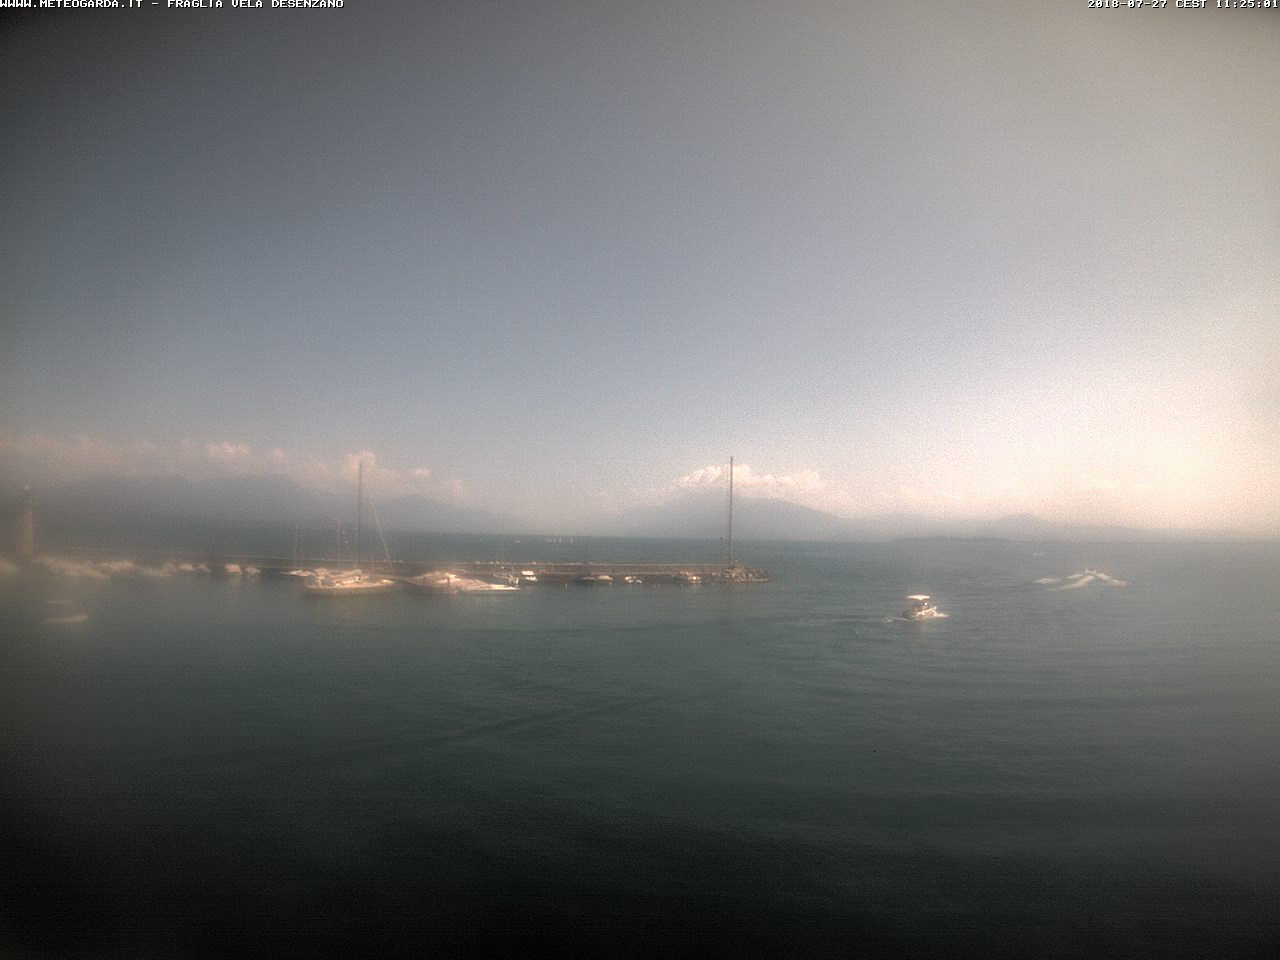 Webcam in Desenzano del Garda - meteogarda.it